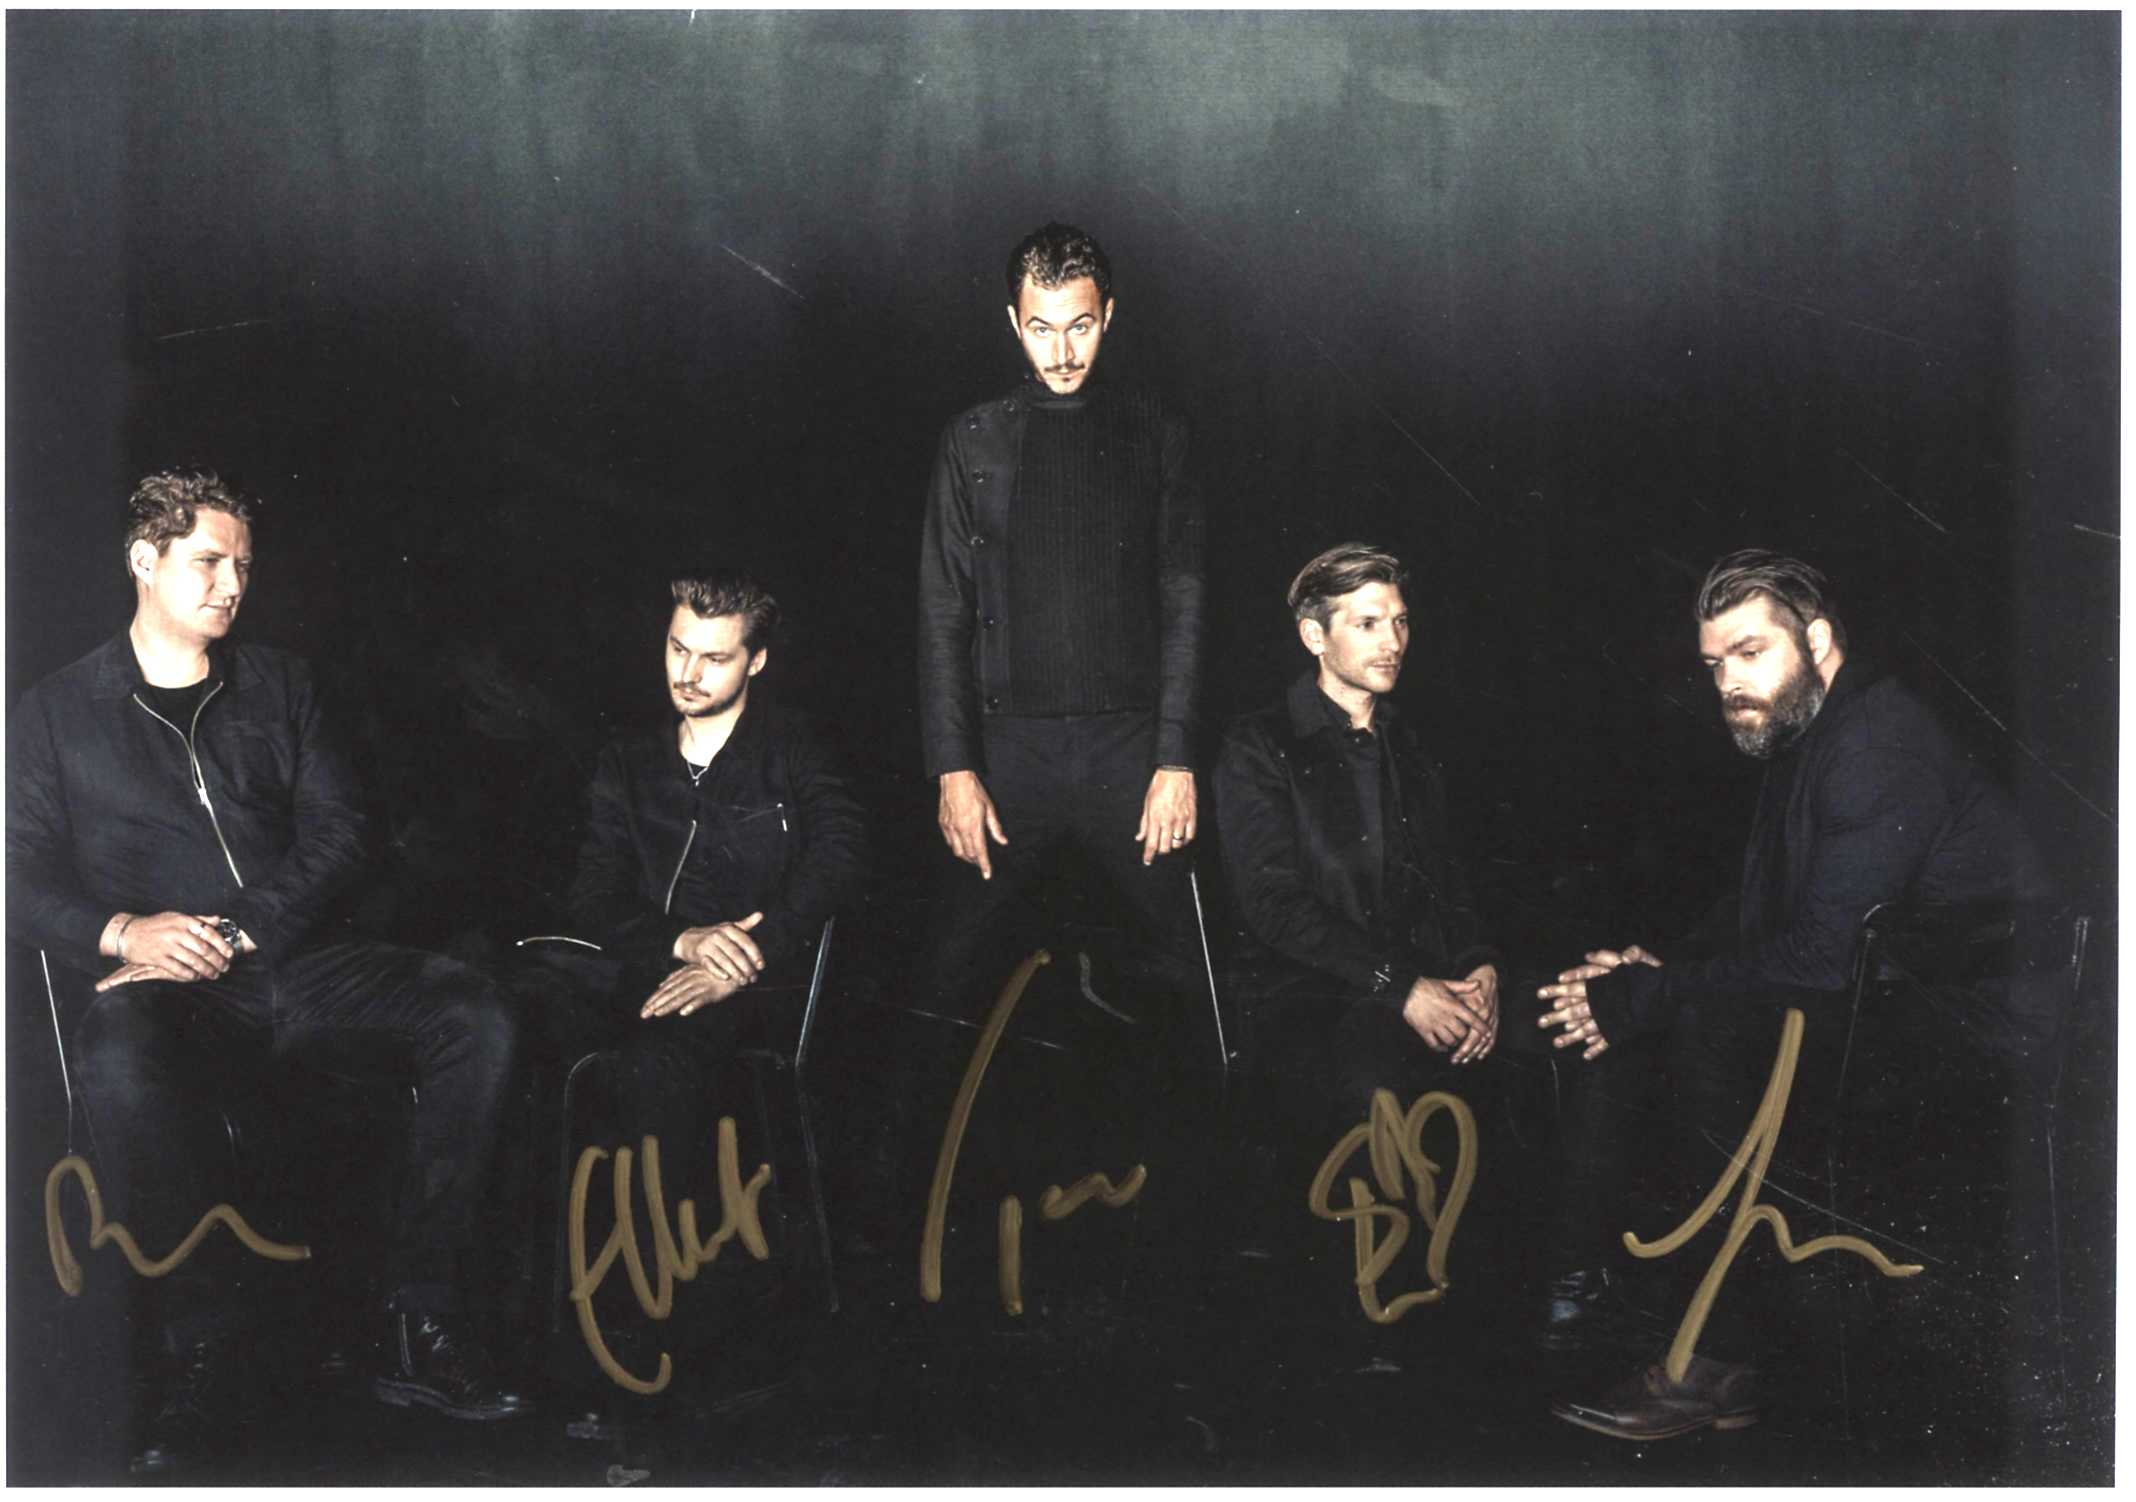 Latest Autographed rarities, including Rival Sons, Editors, Ash